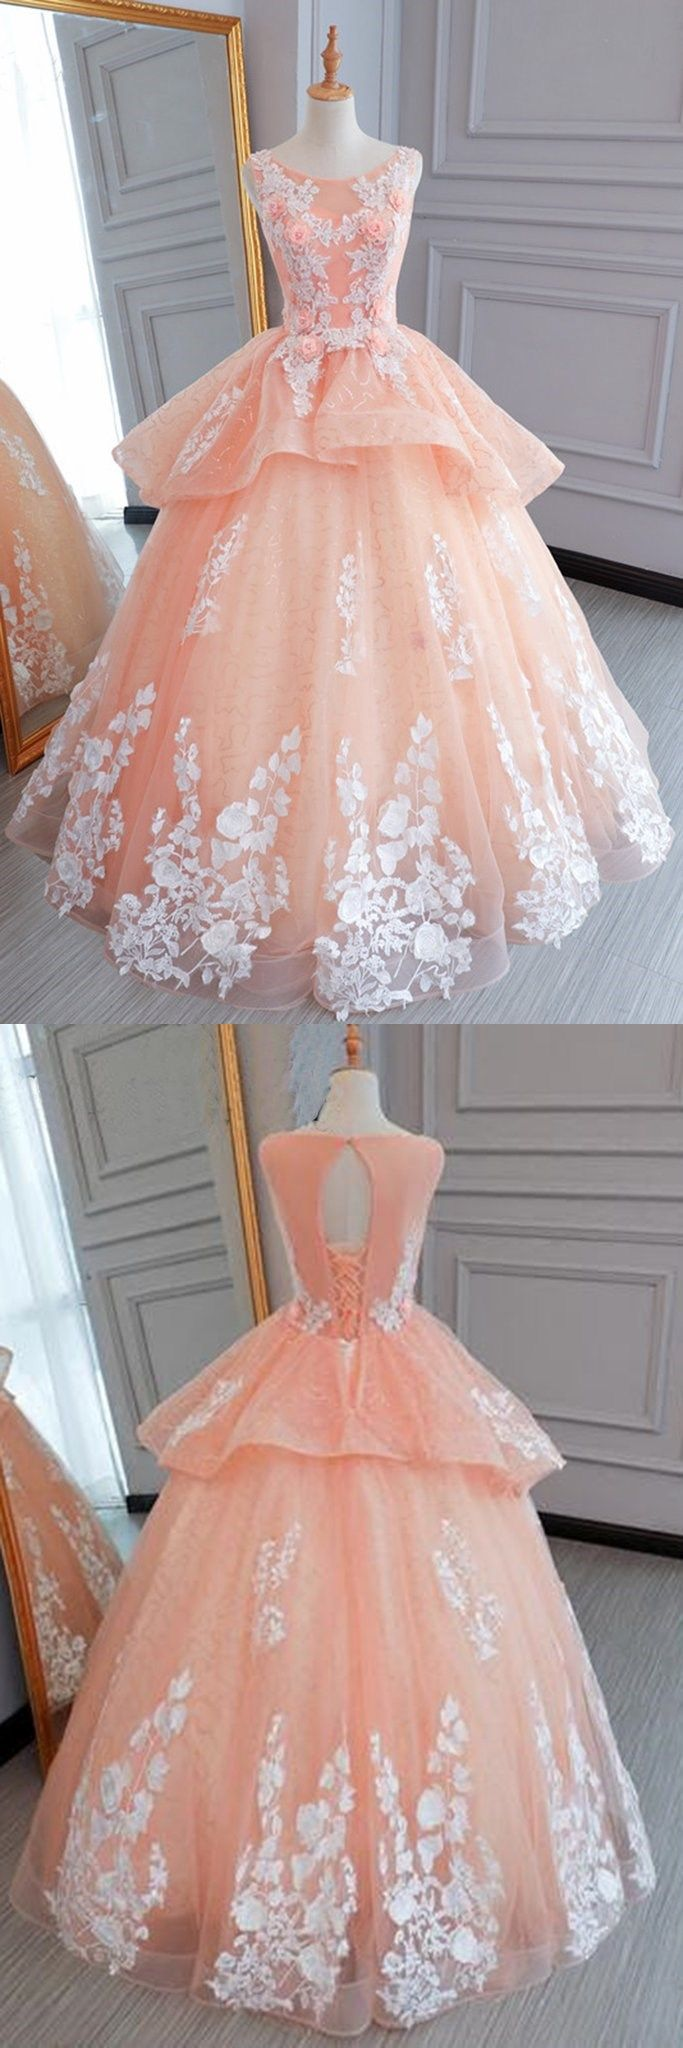 Pink tulle princess round neck long evening dress long white lace